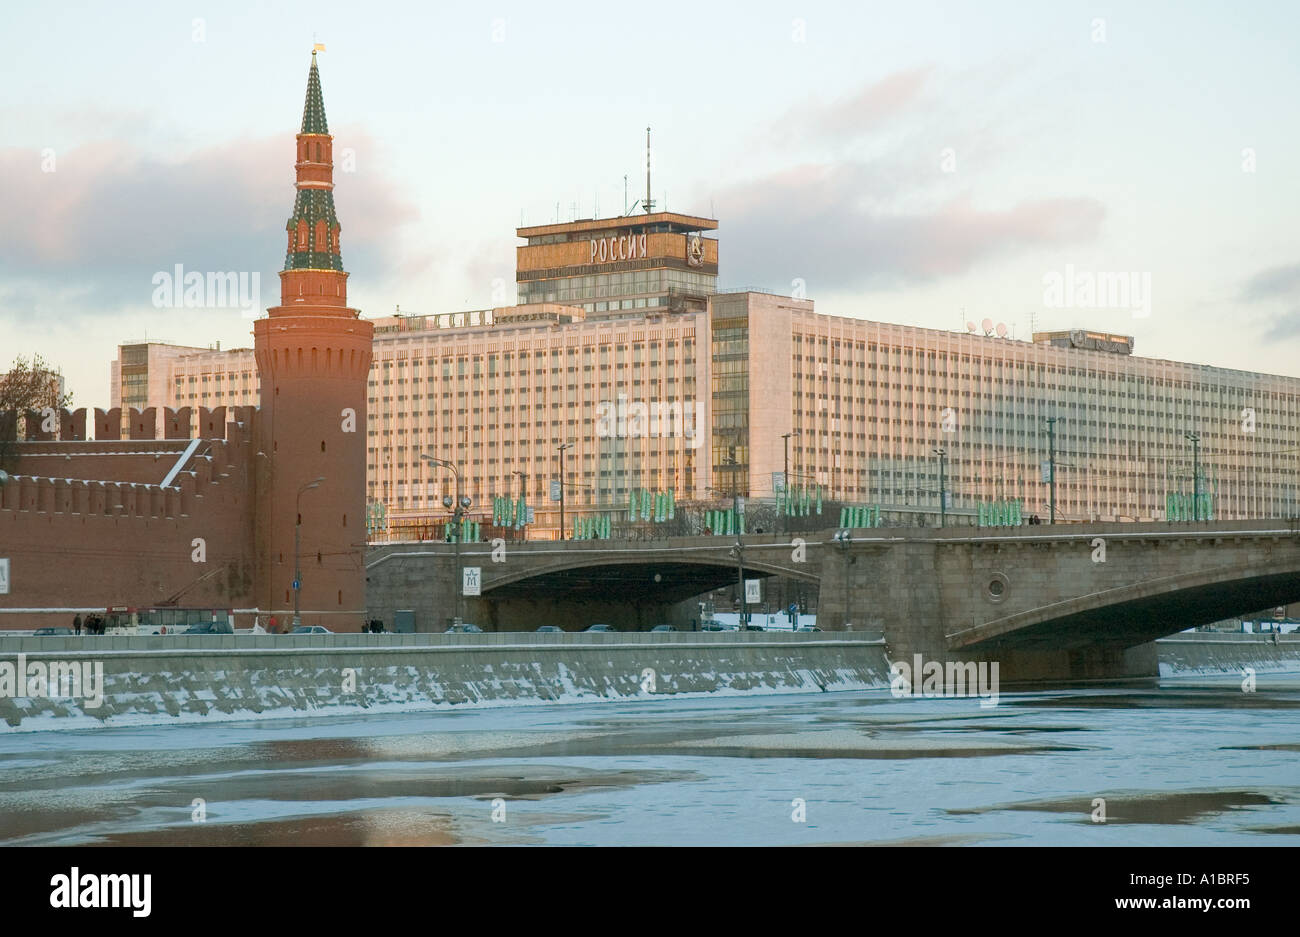 Built in 1967 the Hotel Rossiya was a stone s throw from Red Square and the Kremlin. Demolished in 2006. - Stock Image